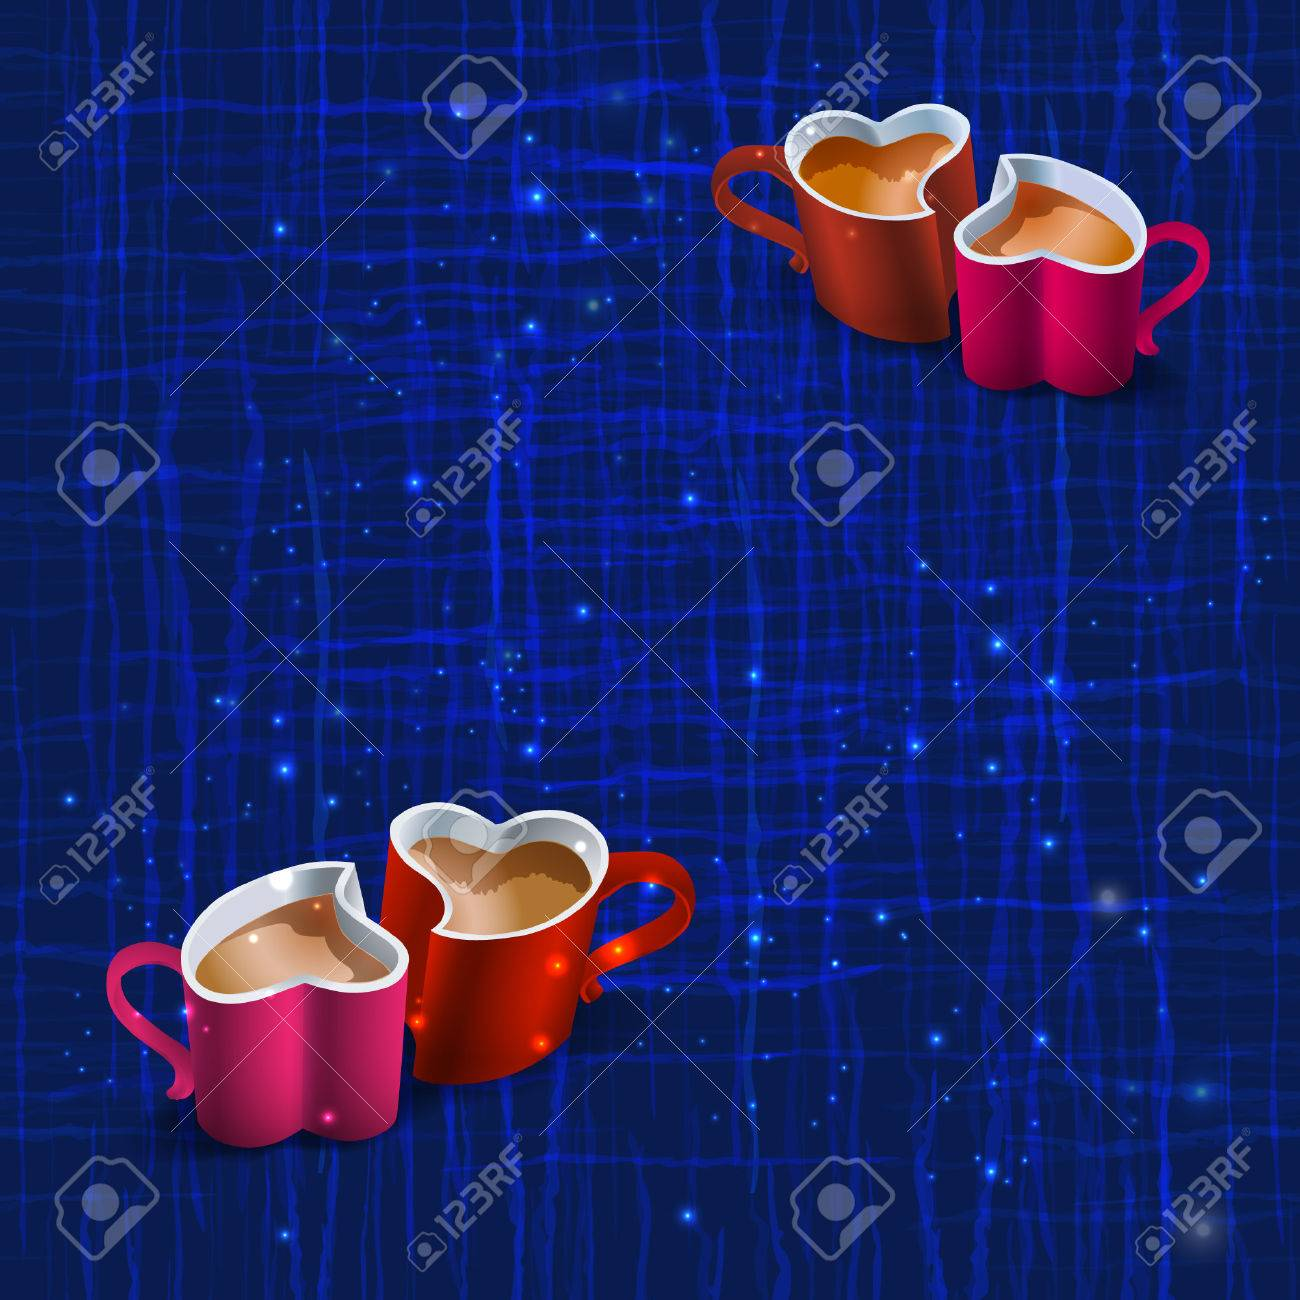 Seamless dark blue texture with wavy lines intersecting and light stars with red cup in the shape of heart. Vector abstract background. - 50704988